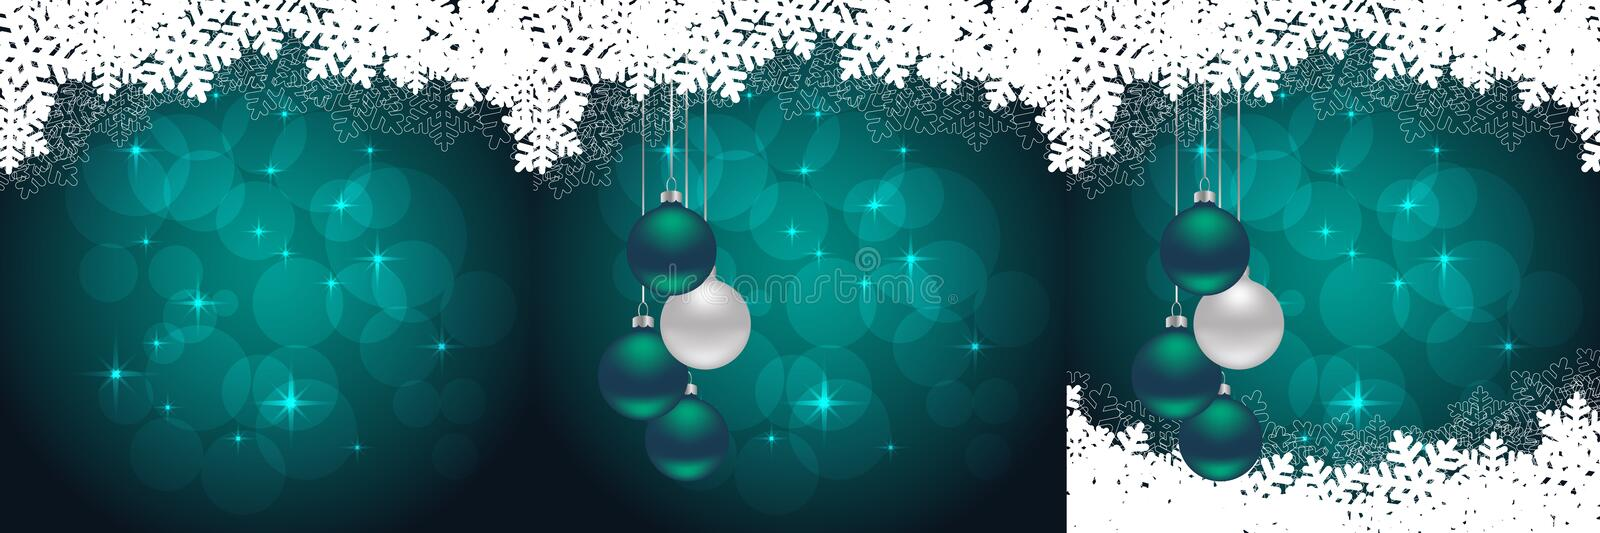 Set of christmas cards. Snowflakes backgrounds with hanging balls and snow. vector illustration stock illustration